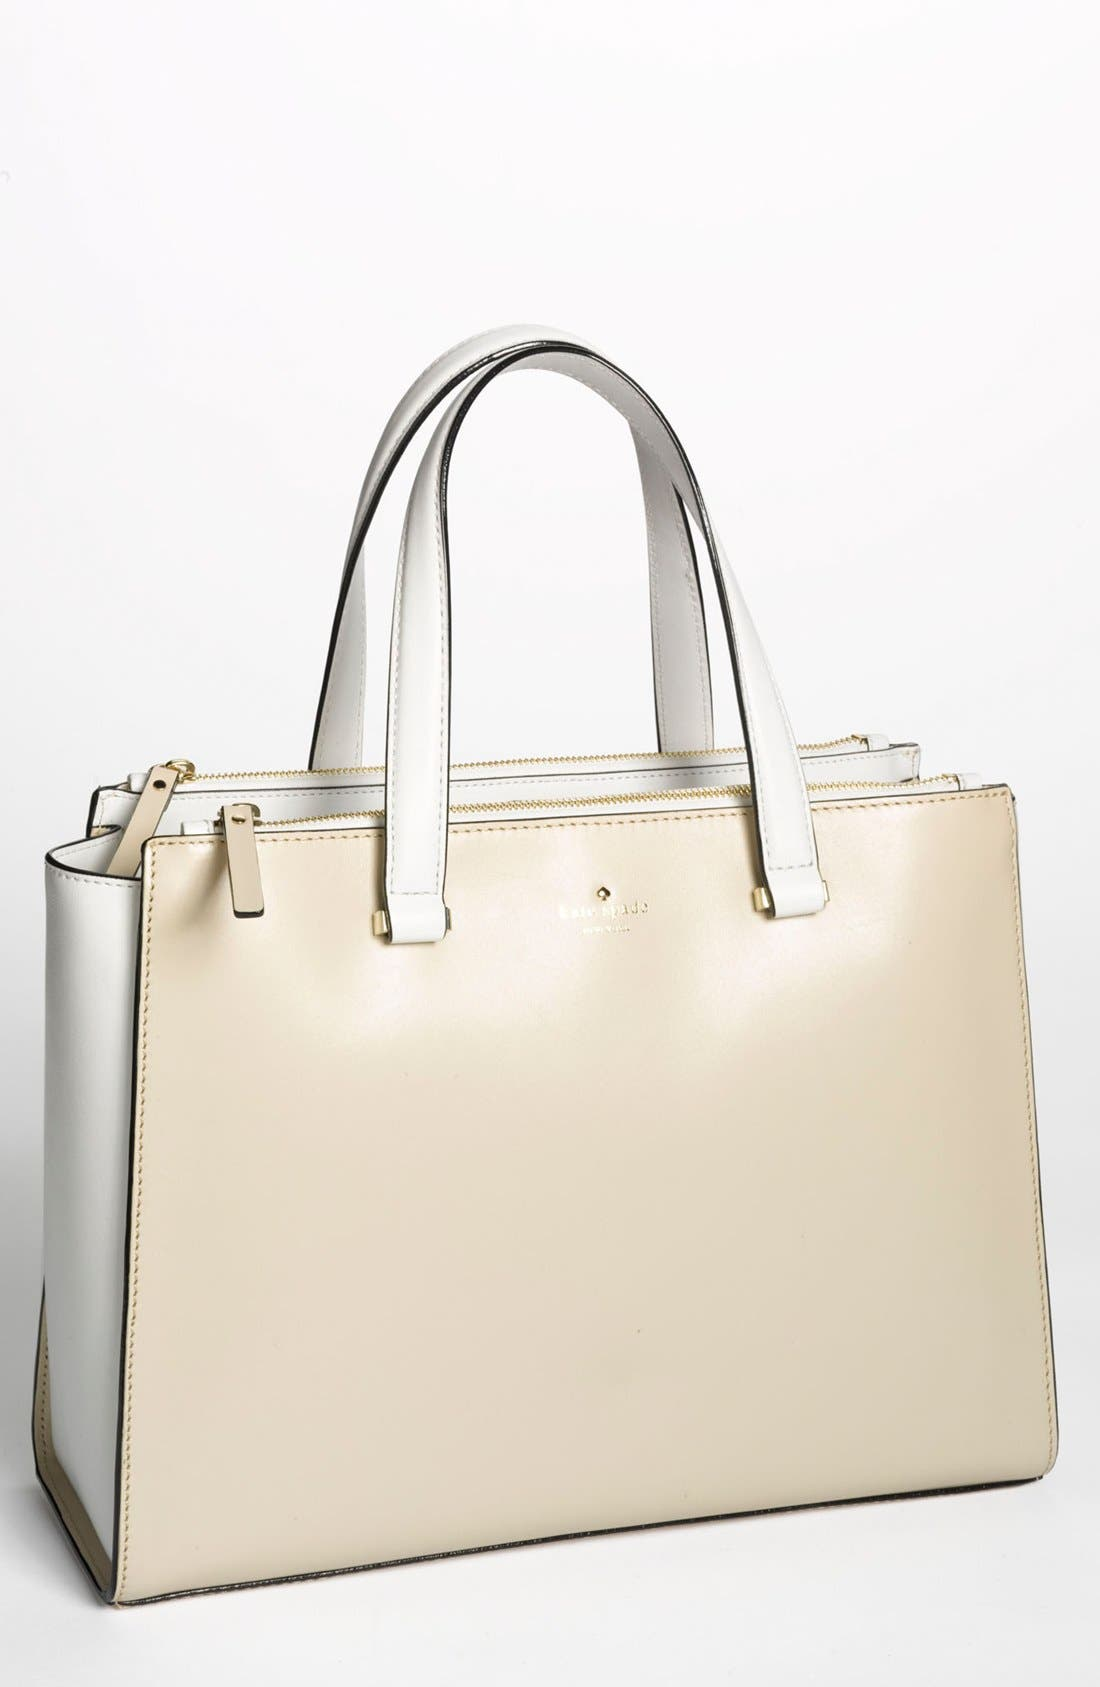 Main Image - kate spade new york 'battery park city - evalyn' leather tote